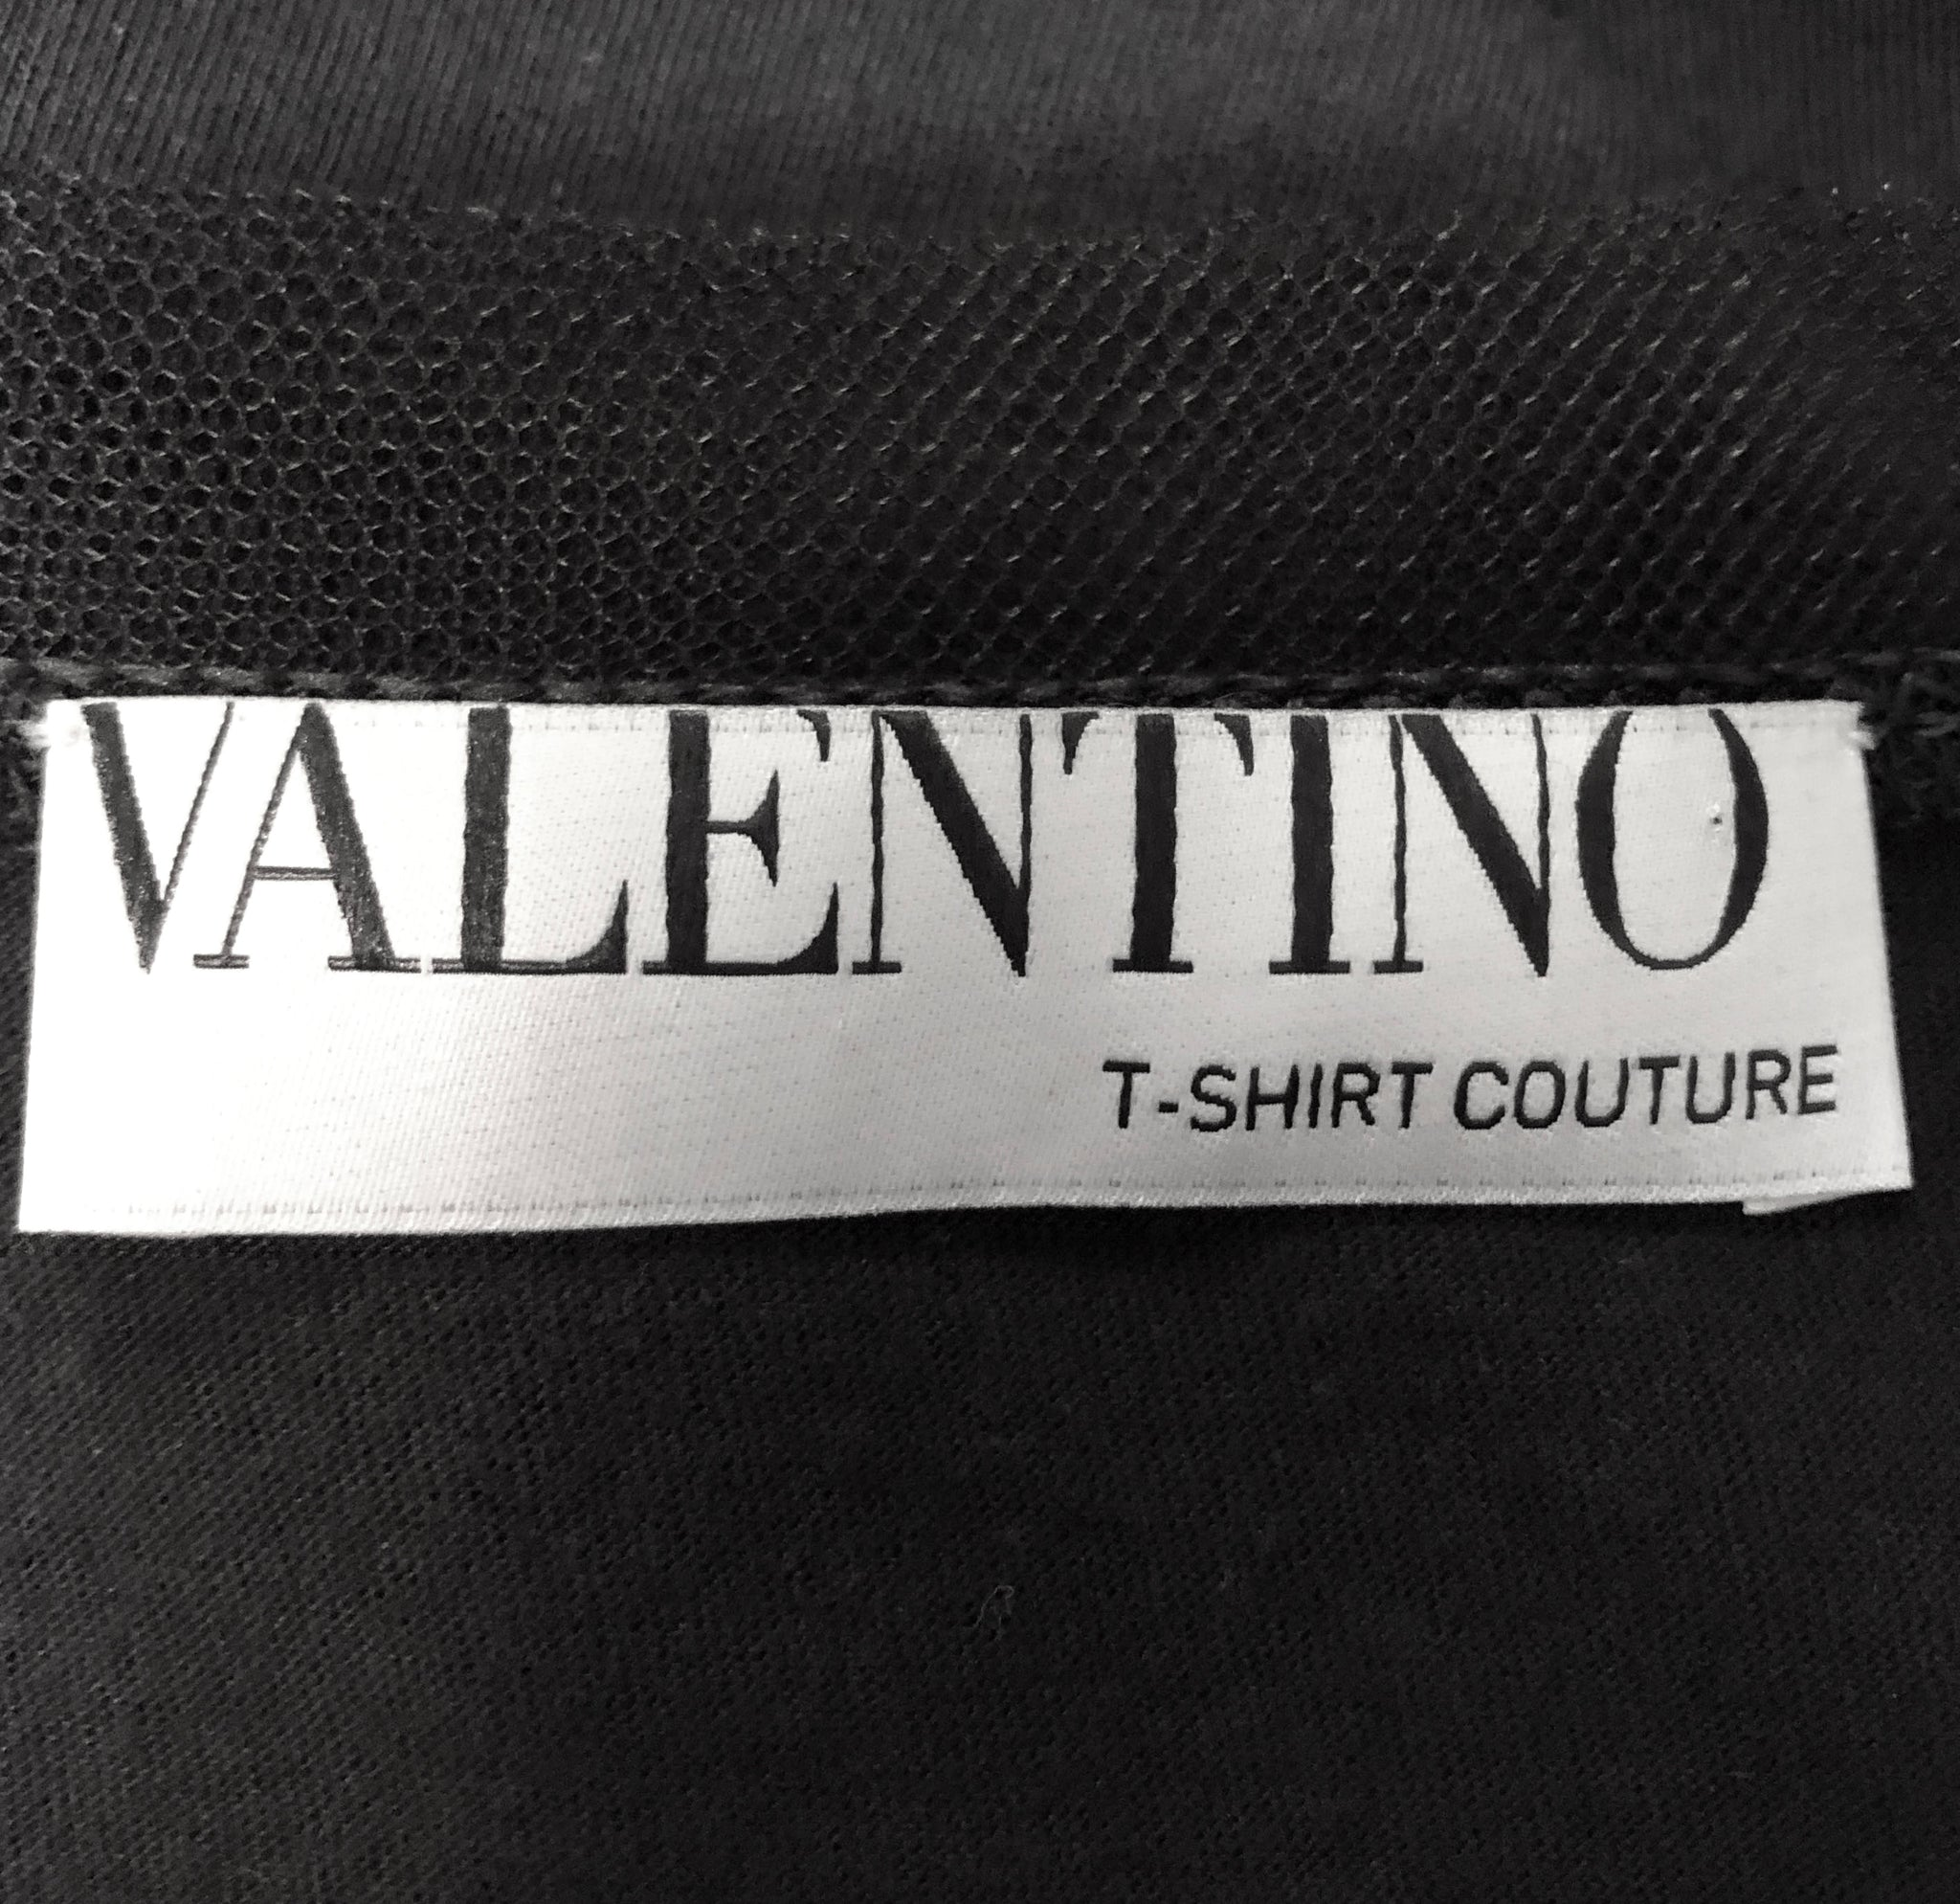 Valentino Contemporary Black Tulle Tee With Rhinestone Medallion LABEL 4 of 4